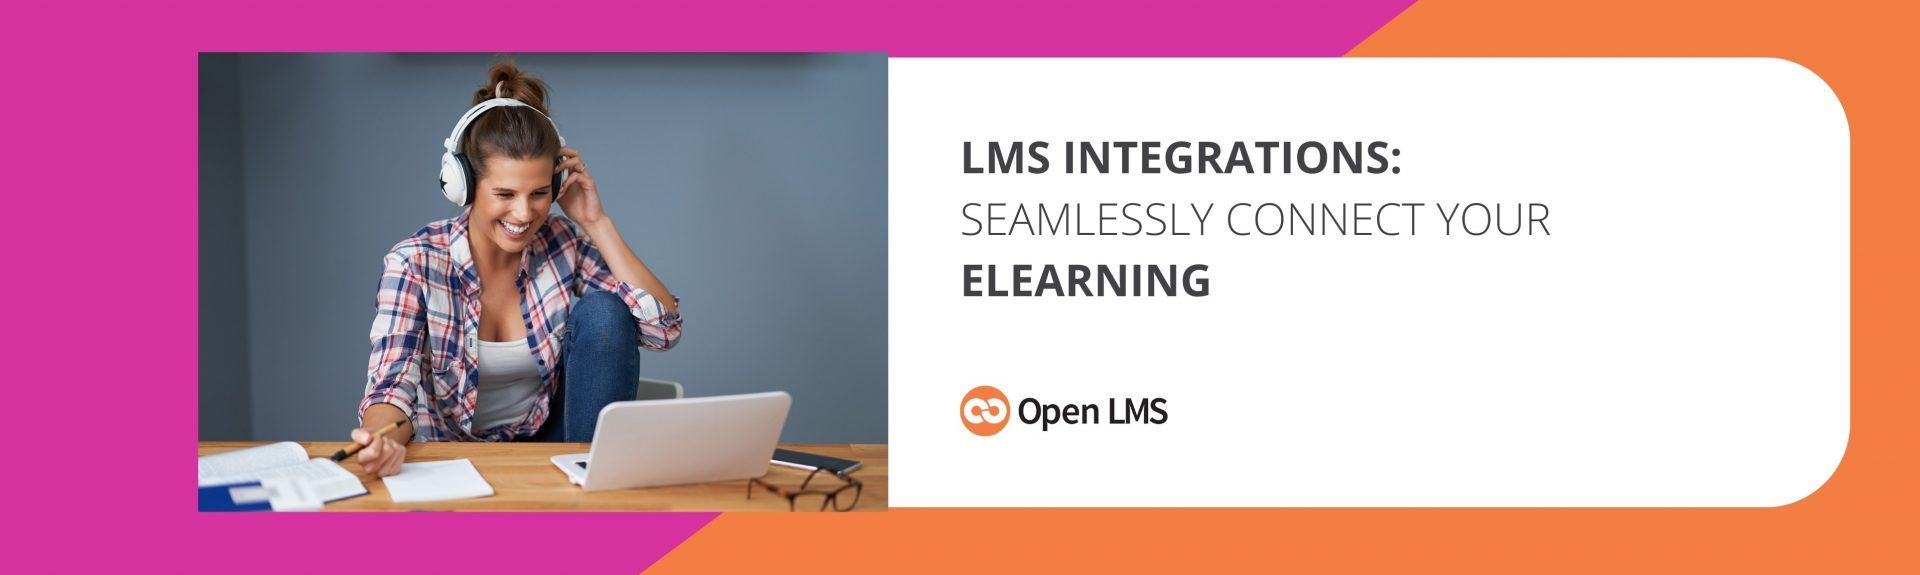 LMS Integrations: Seamlessly Connect Your eLearning